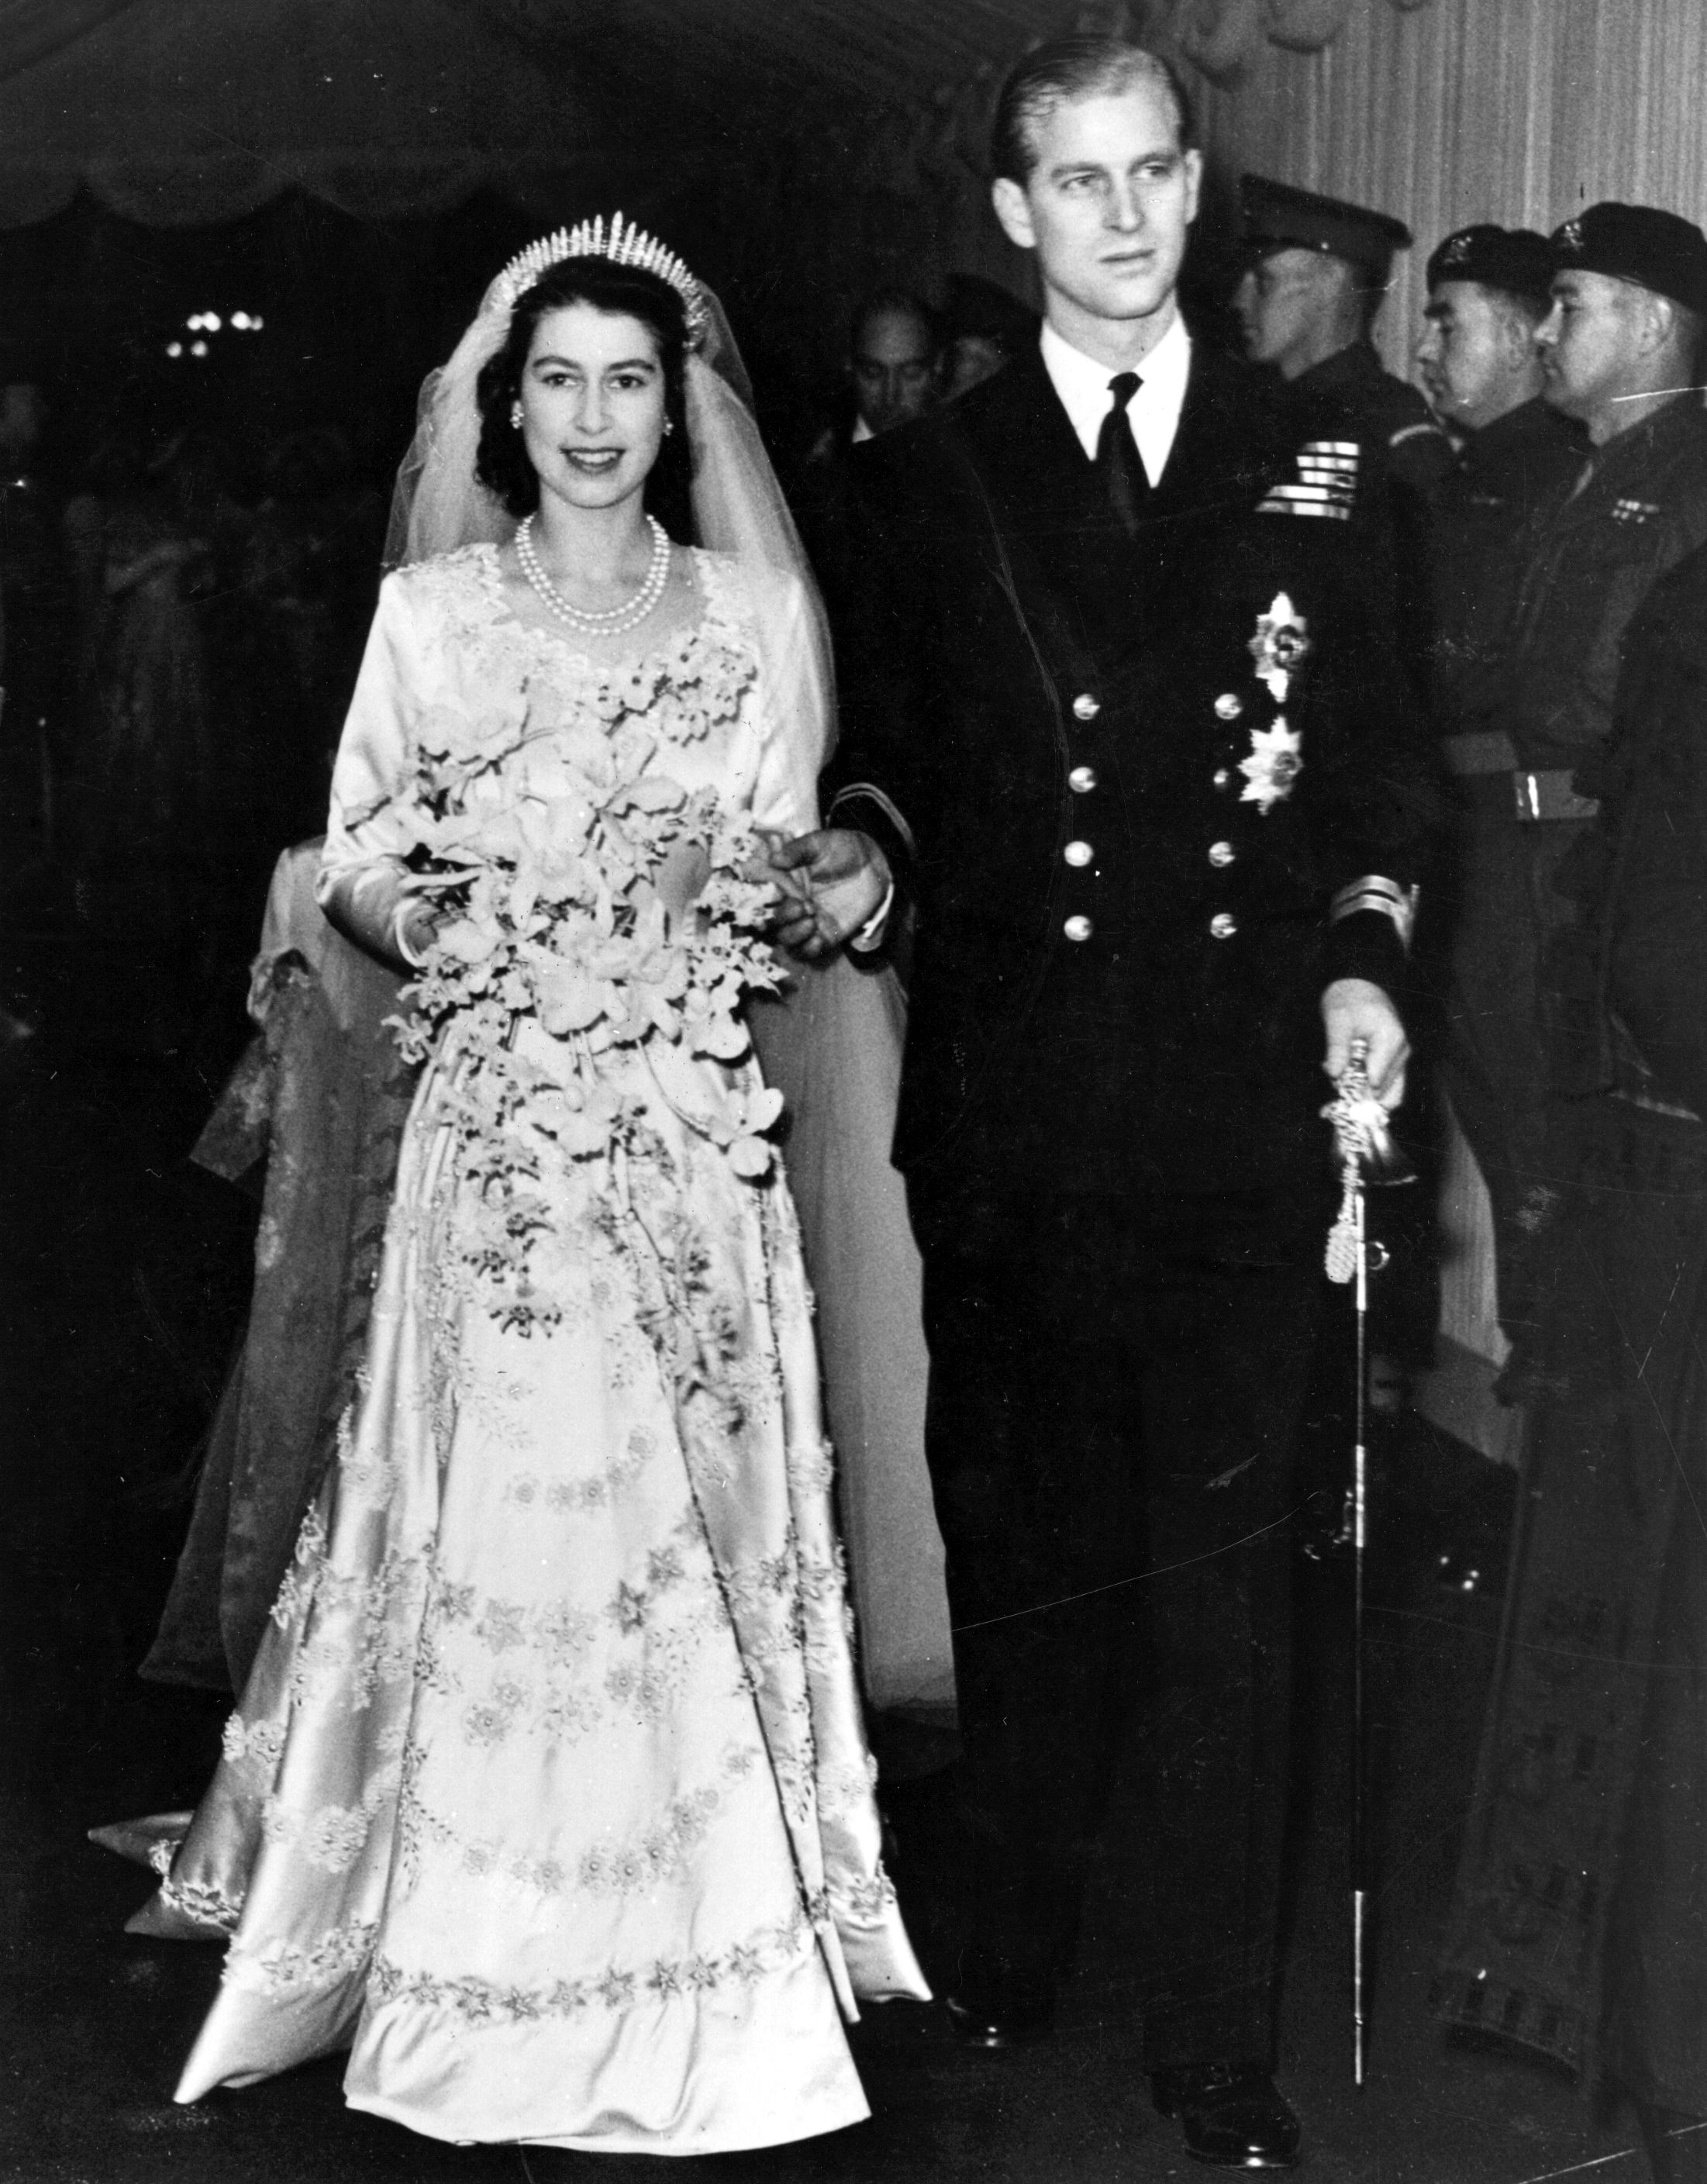 Queen Elizabeth and Prince Philip pictured at their wedding in 1947, London, England. | Photo: Getty Images